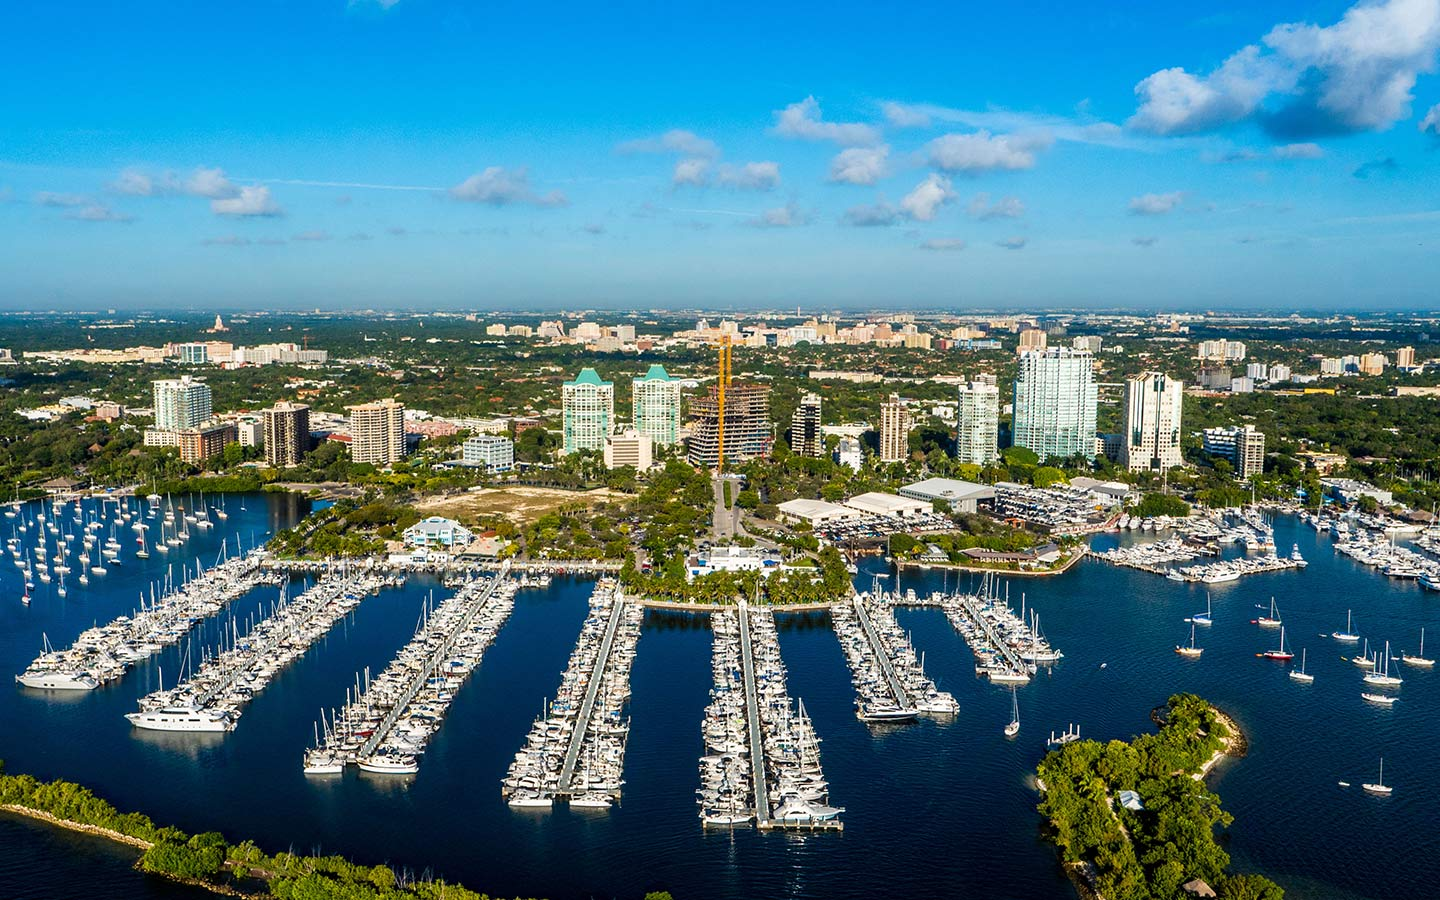 Aerial view of Coconut Grove Marina